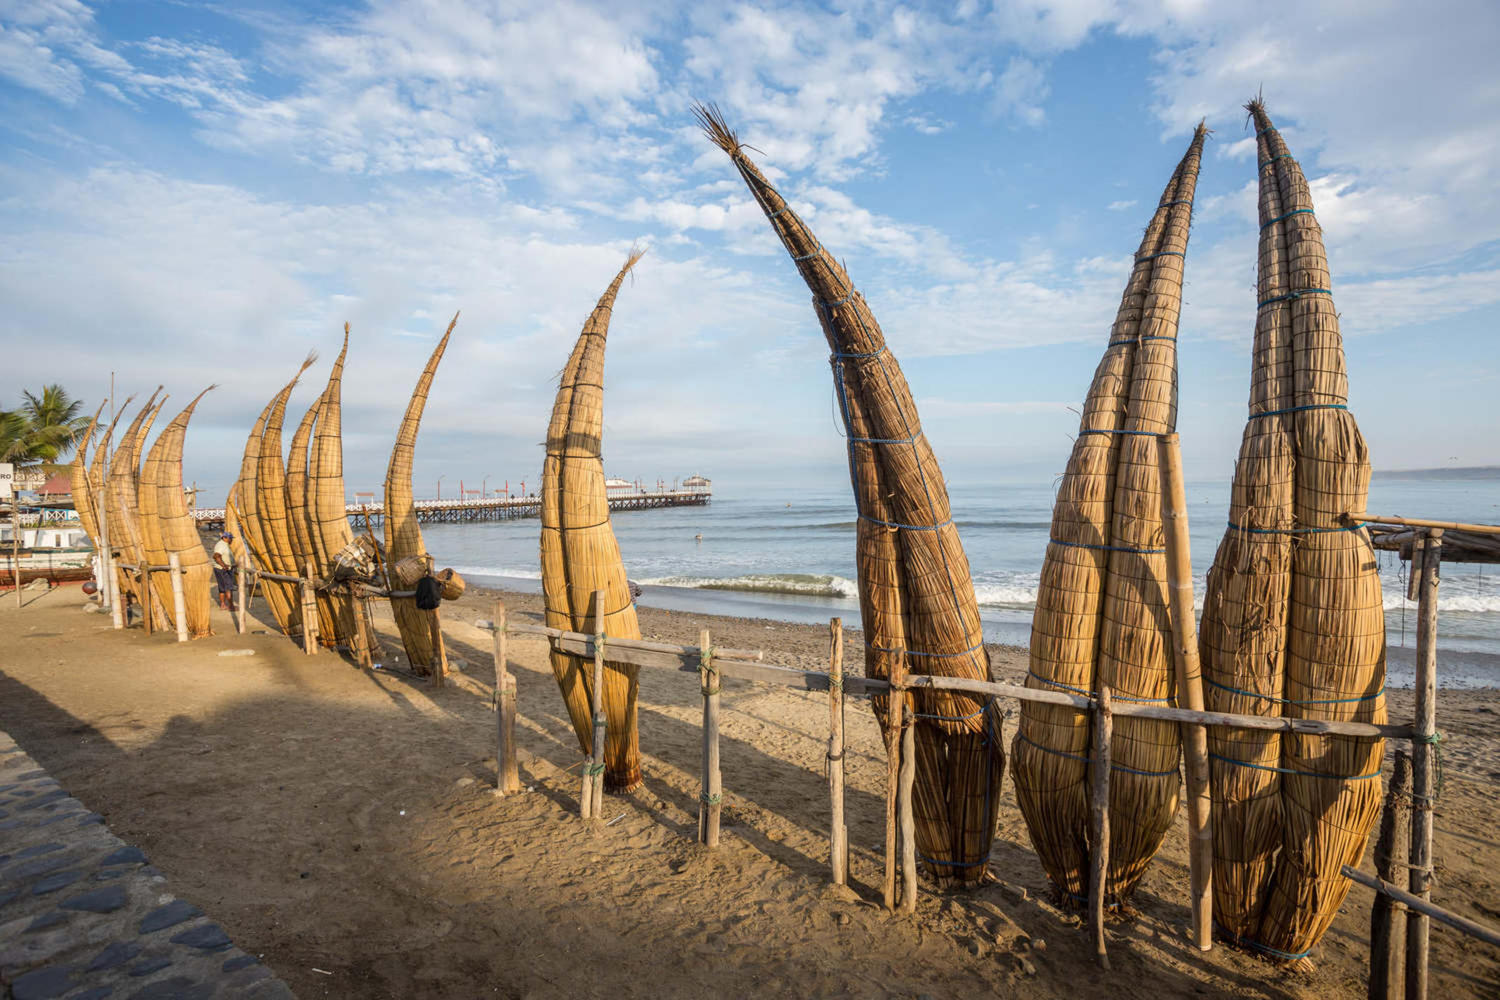 Caballitos de Totora reed watercrafts in Huanchaco